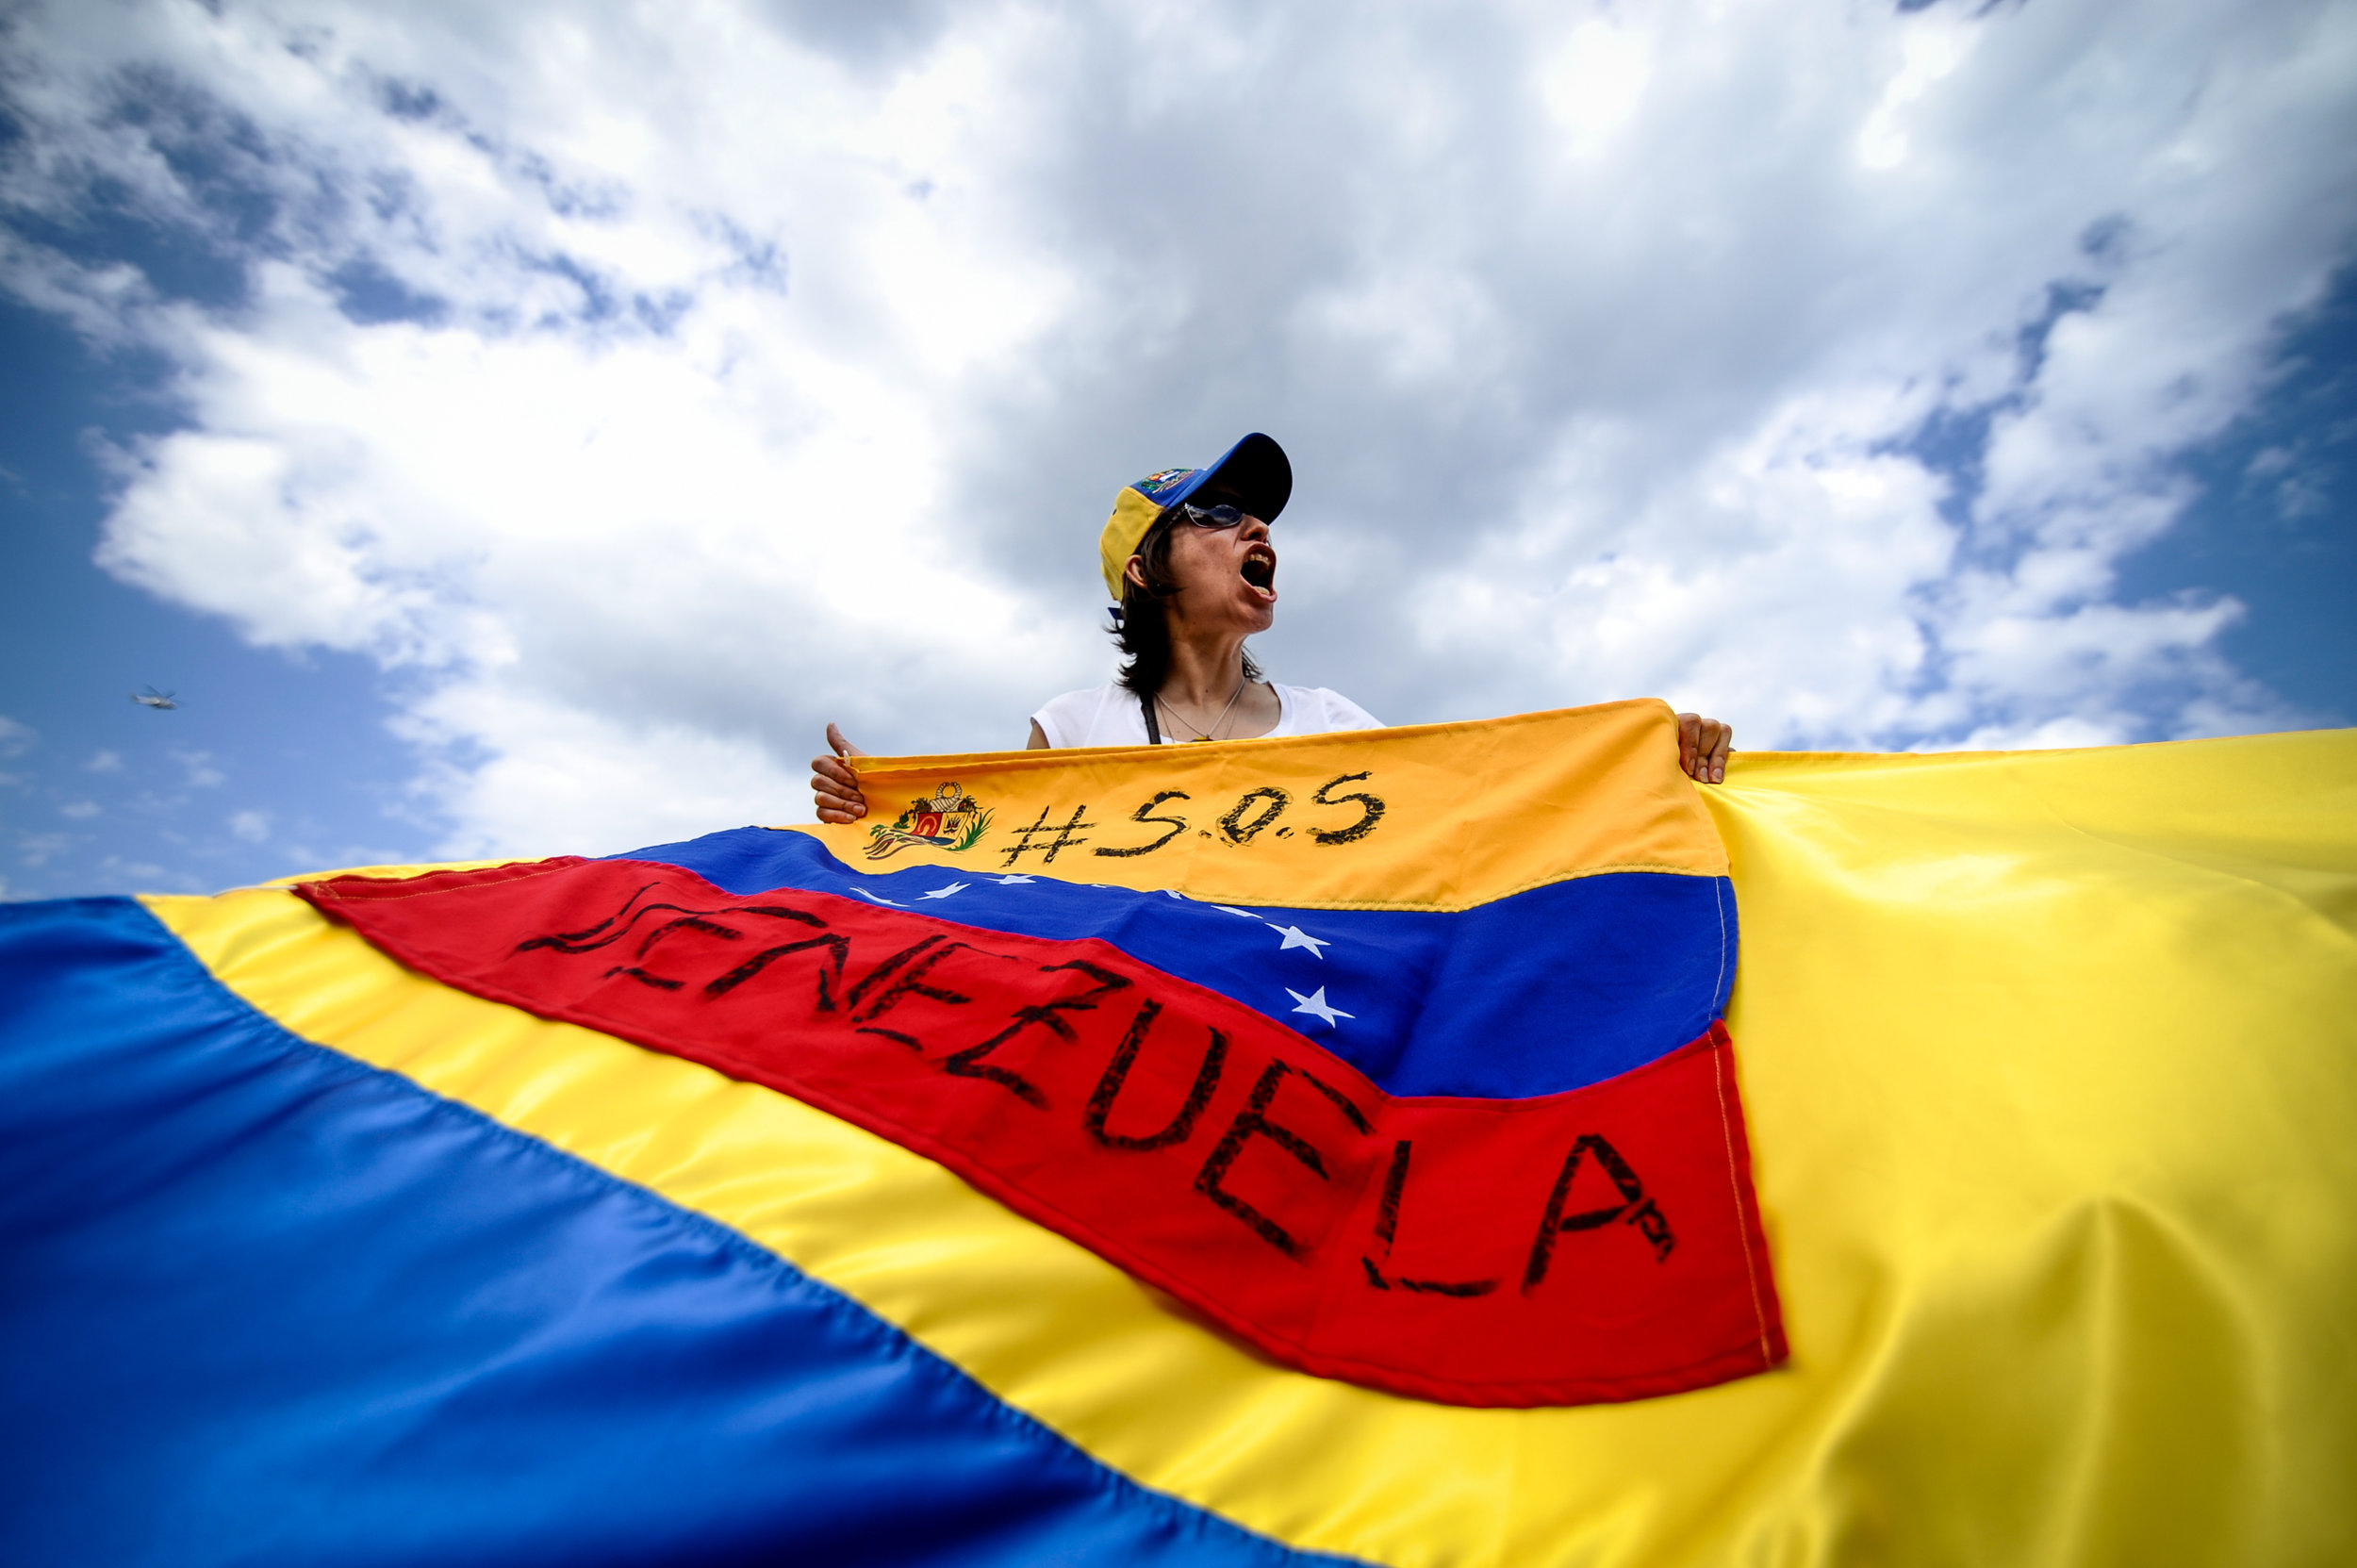 A woman holds a Venezuelan flag as she takes part in a demonstration against the G7 summit in Giardini Naxos near Taormina, Sicily, Italy, May 27, 2017.